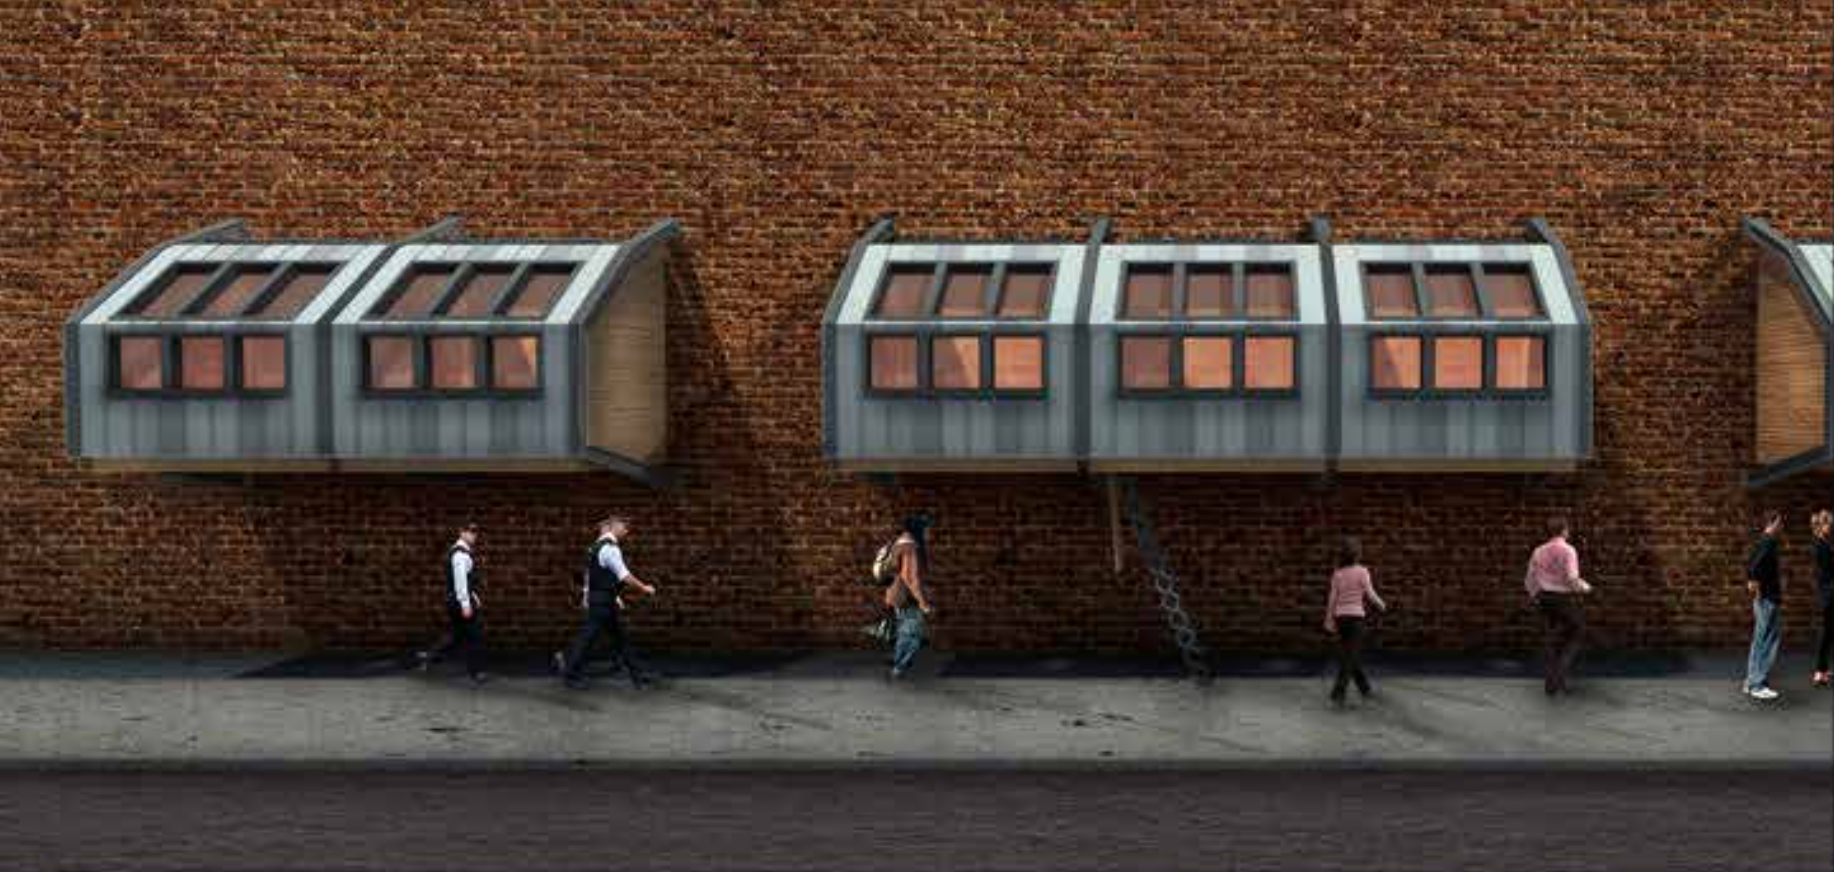 These temporary sleeping pods can be attached to the side of any building or structure, providing a a safe haven for homeless to get a good night's rest.